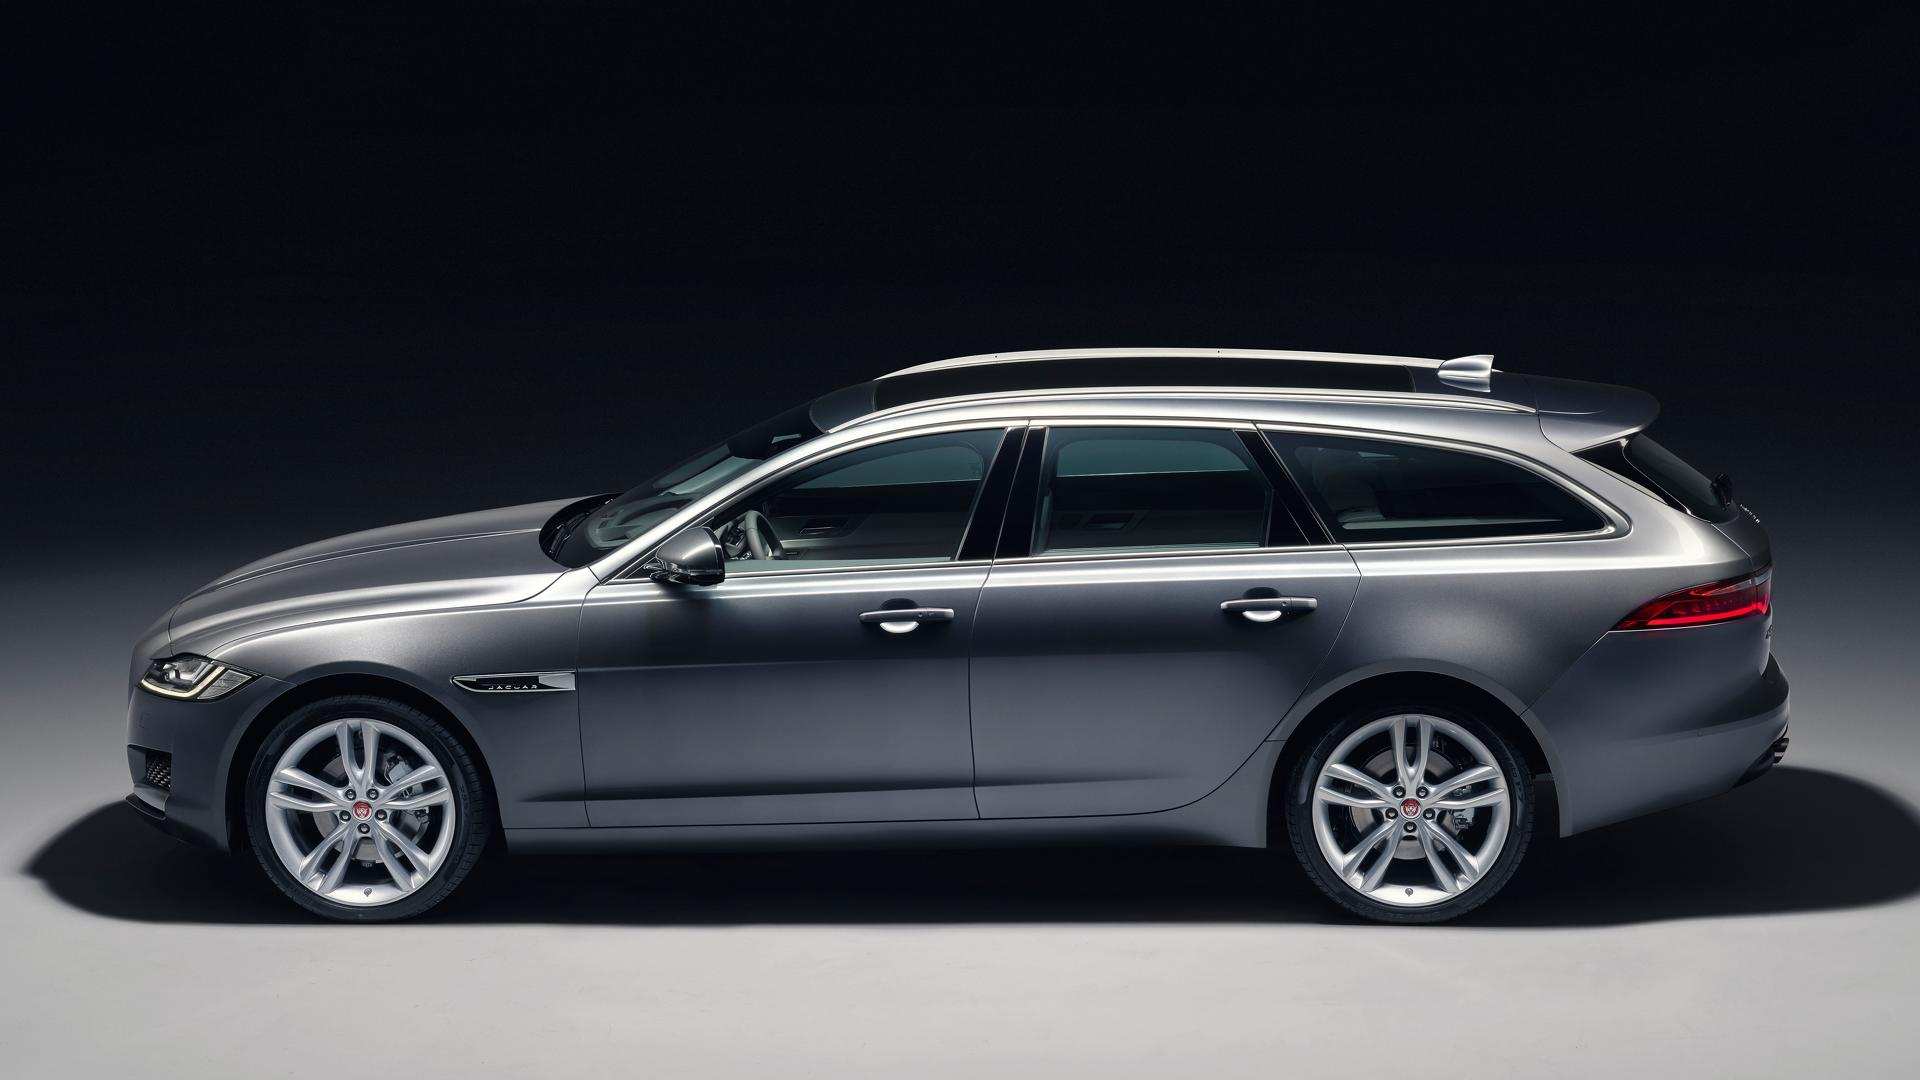 2018 jaguar xf sportbrake officially revealed looks stunning autoevolution. Black Bedroom Furniture Sets. Home Design Ideas